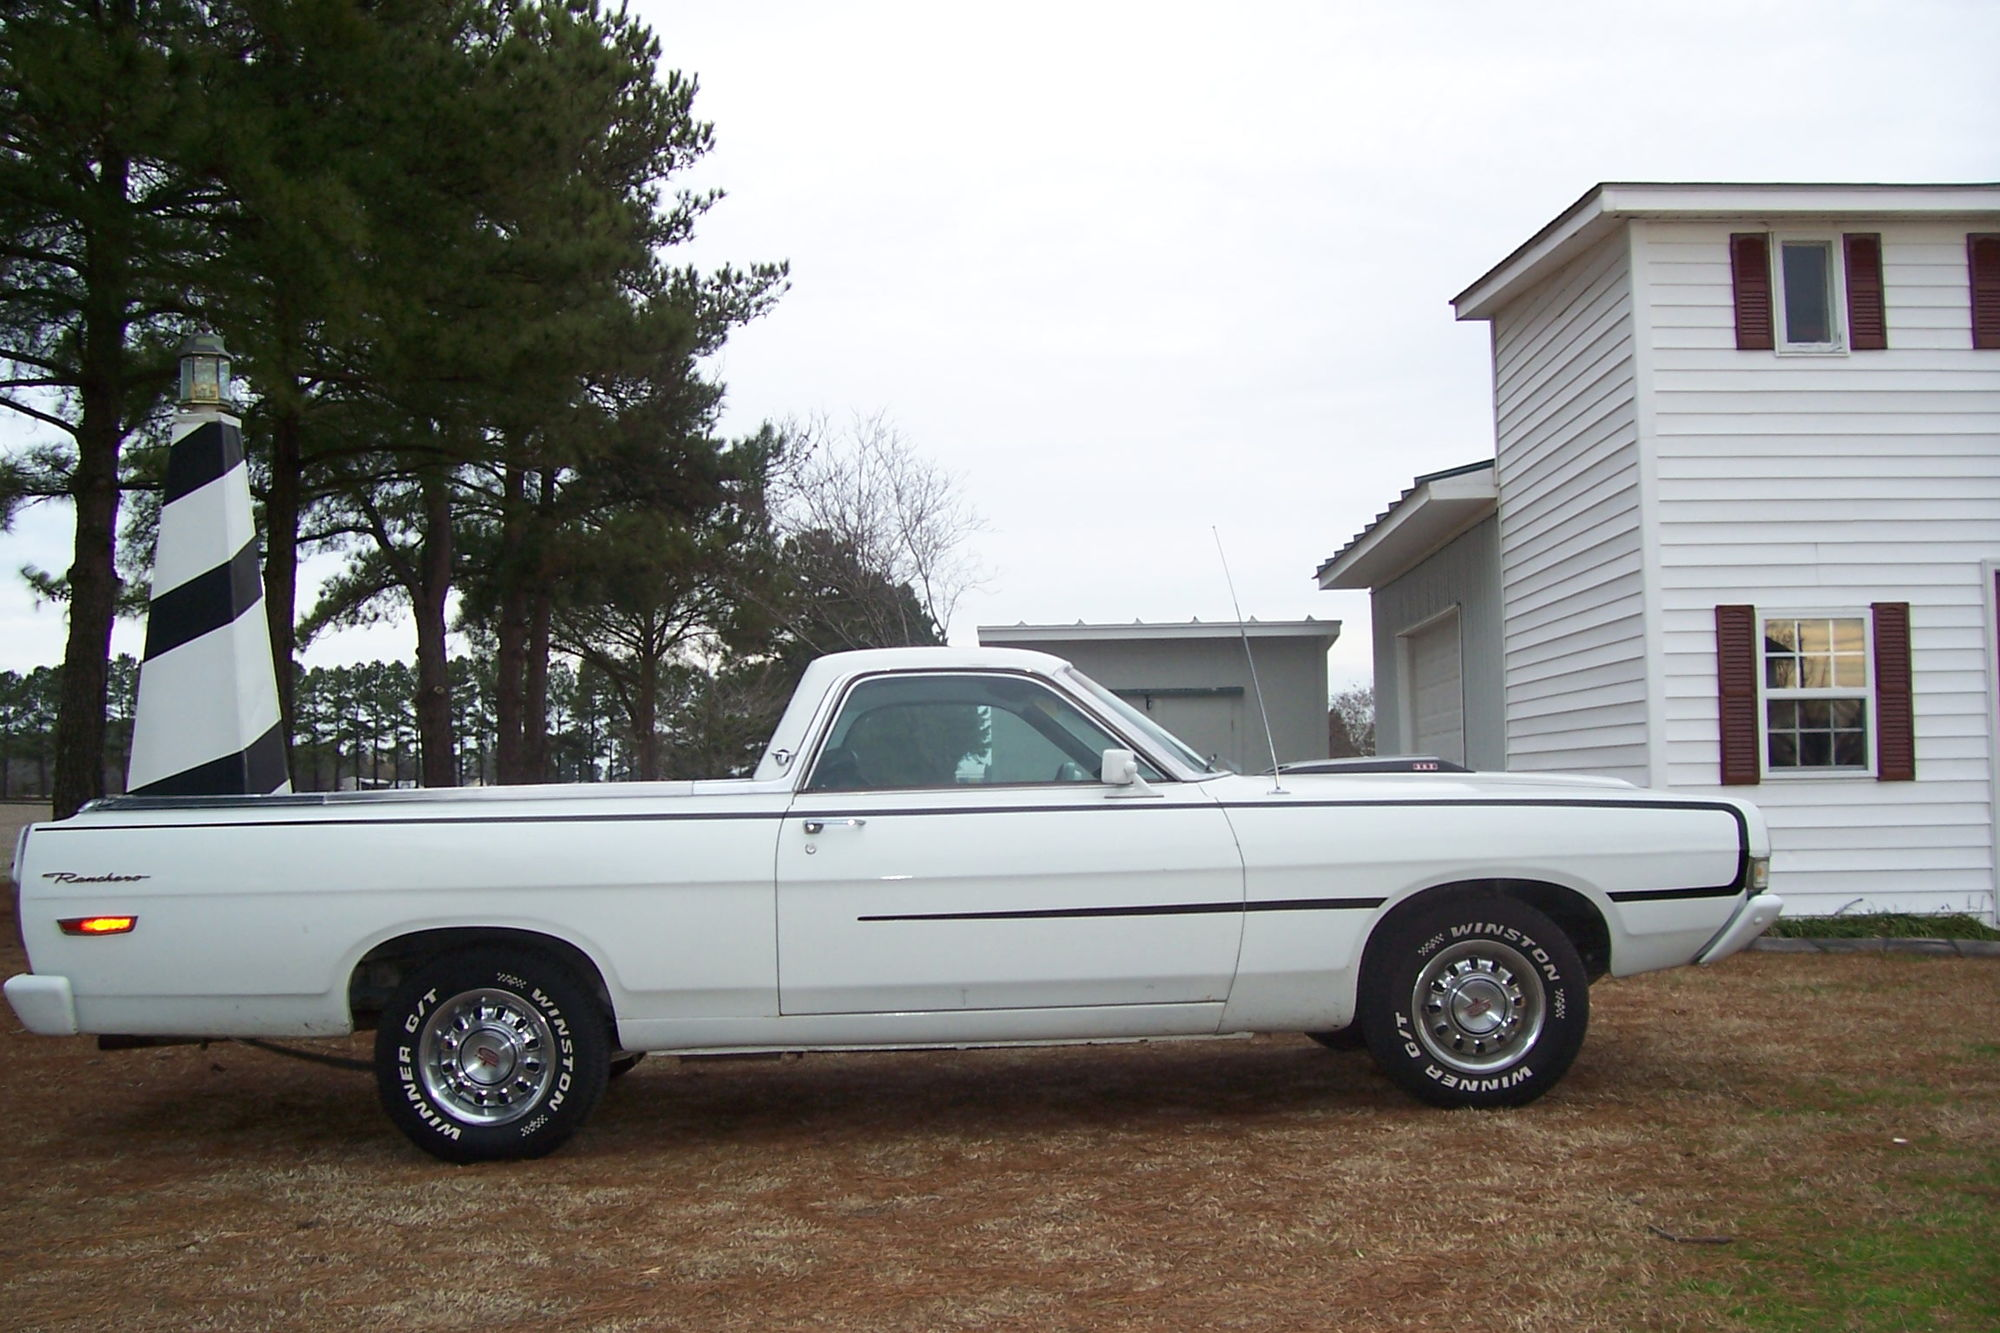 68 ford ranchero pictures ford truck enthusiasts forums. Black Bedroom Furniture Sets. Home Design Ideas